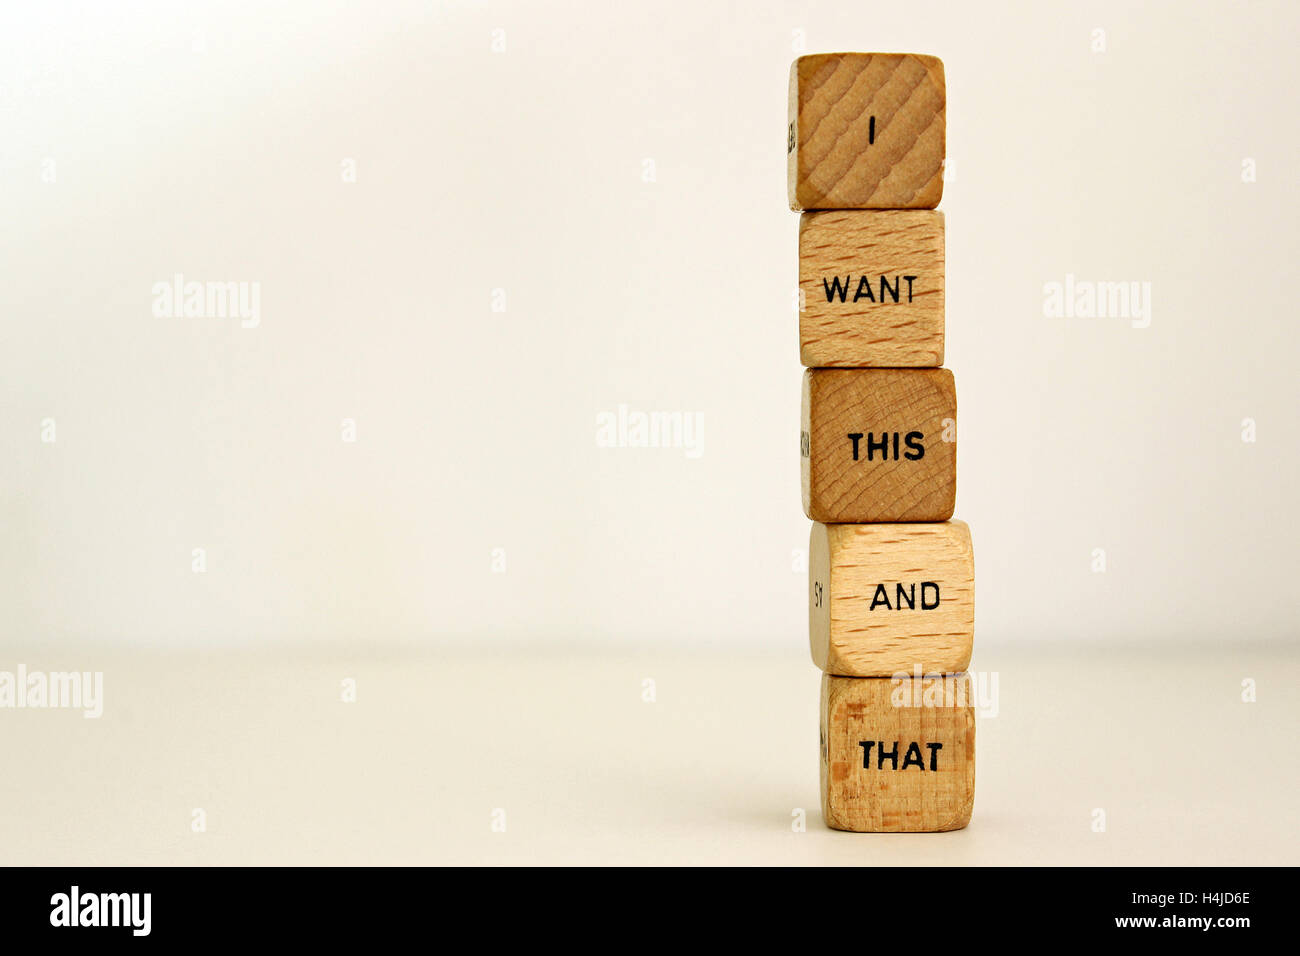 :I want this and that' printed on wood dice against white background. - Stock Image